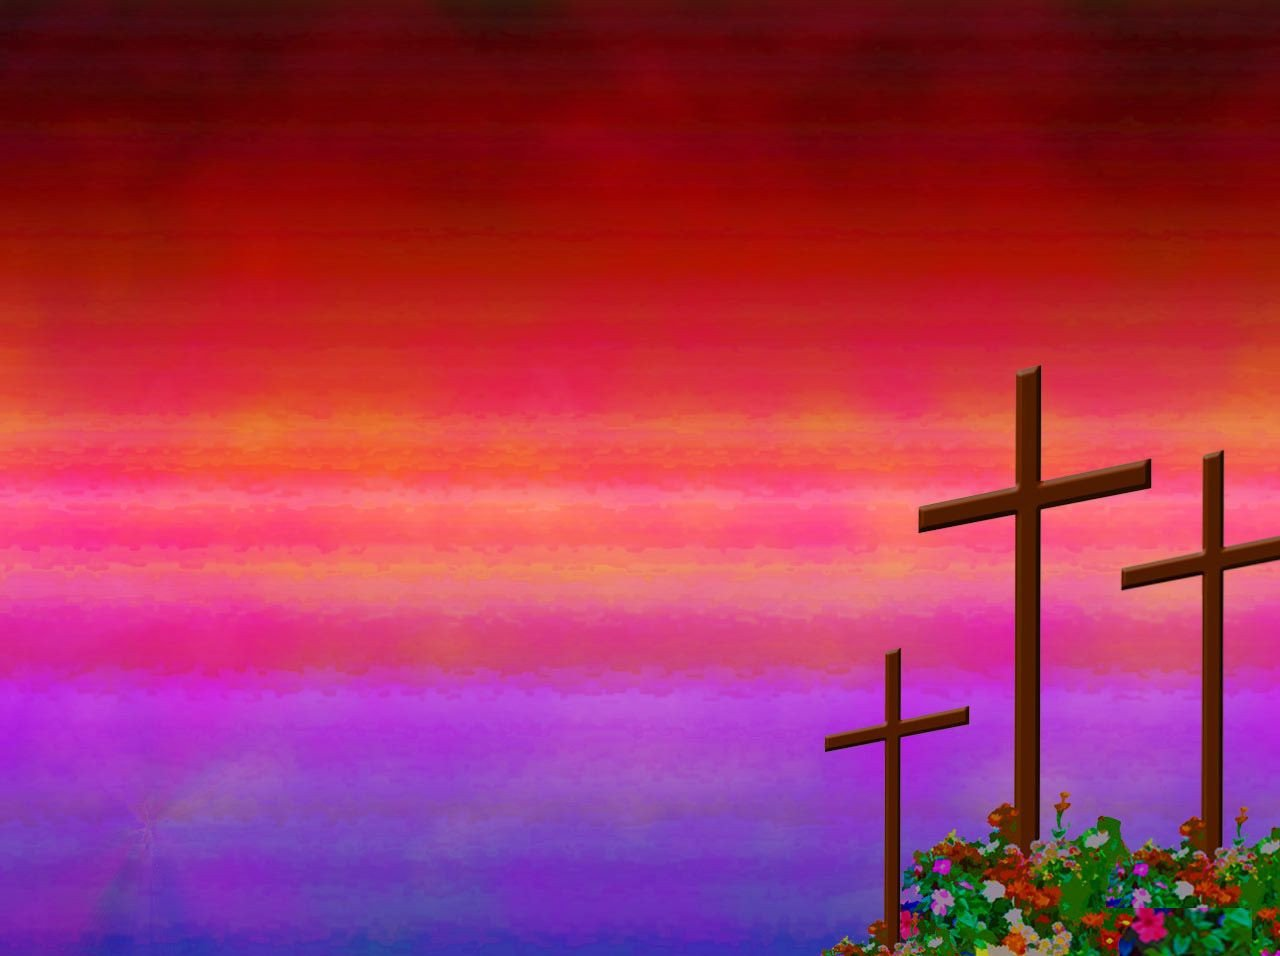 Free Christian Powerpoint Templates Christian Rose Garden Powerpoint Background Available In